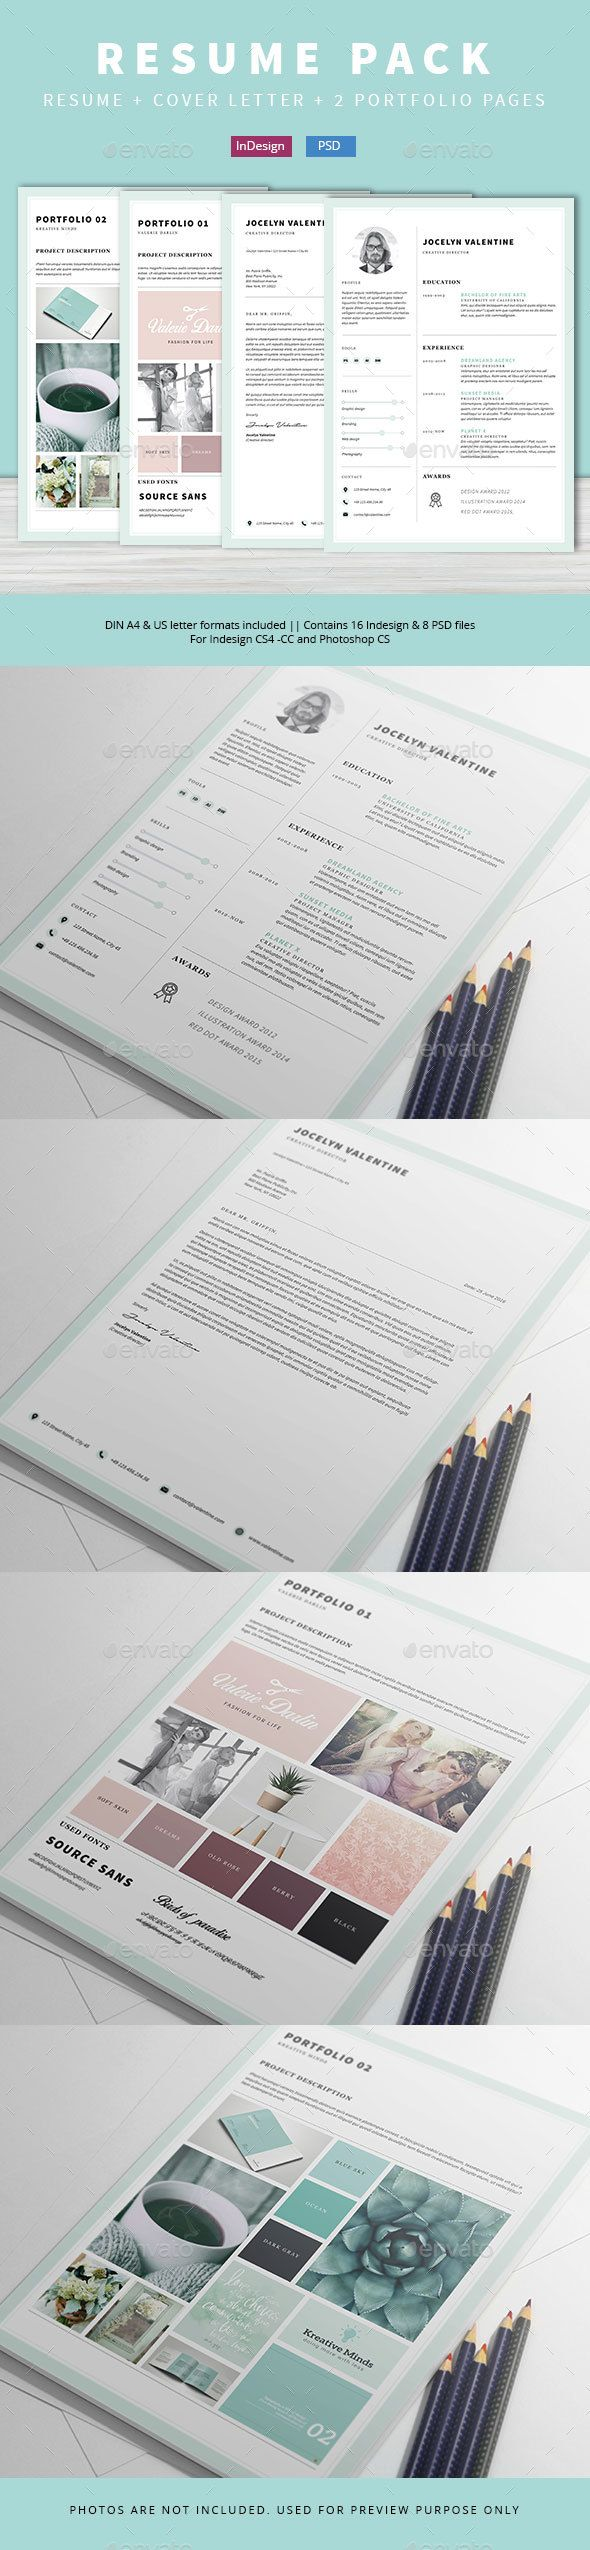 4 Pieces Resume Creative Resume TemplatesSimple